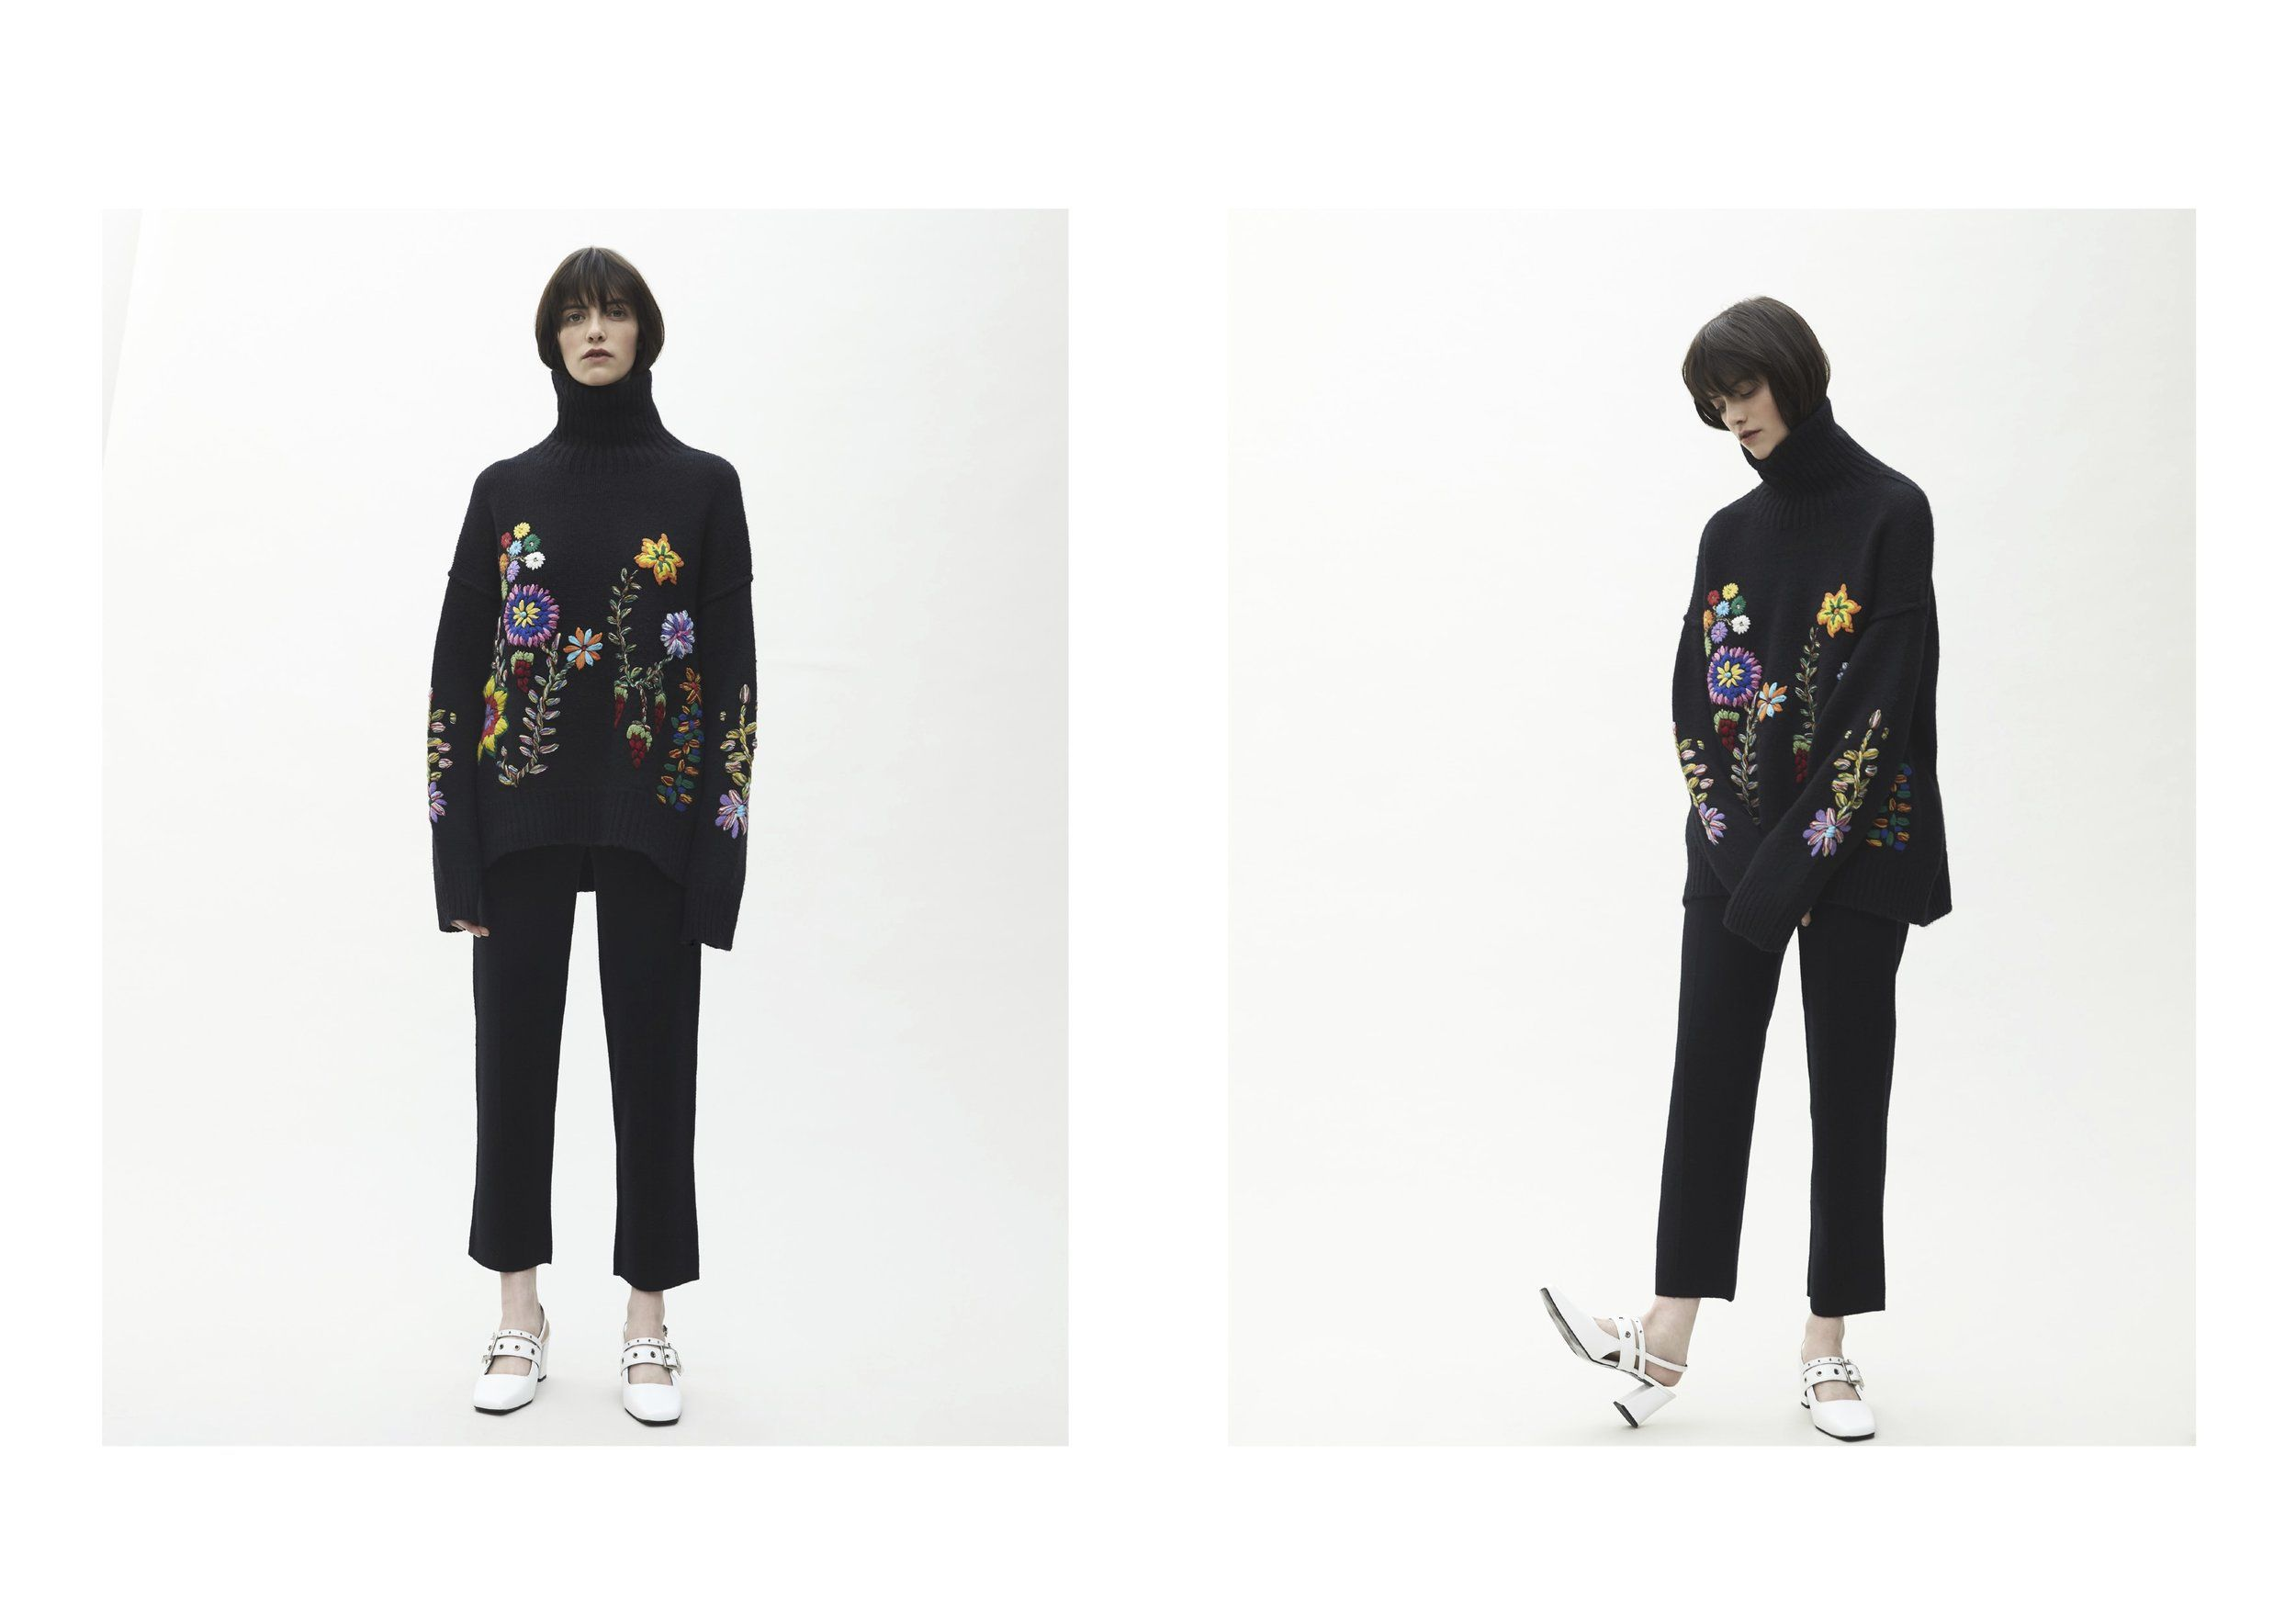 69965364387 MANDKHAI AW18 19 Oversized jumper 2 in black with hand embroidered flowers